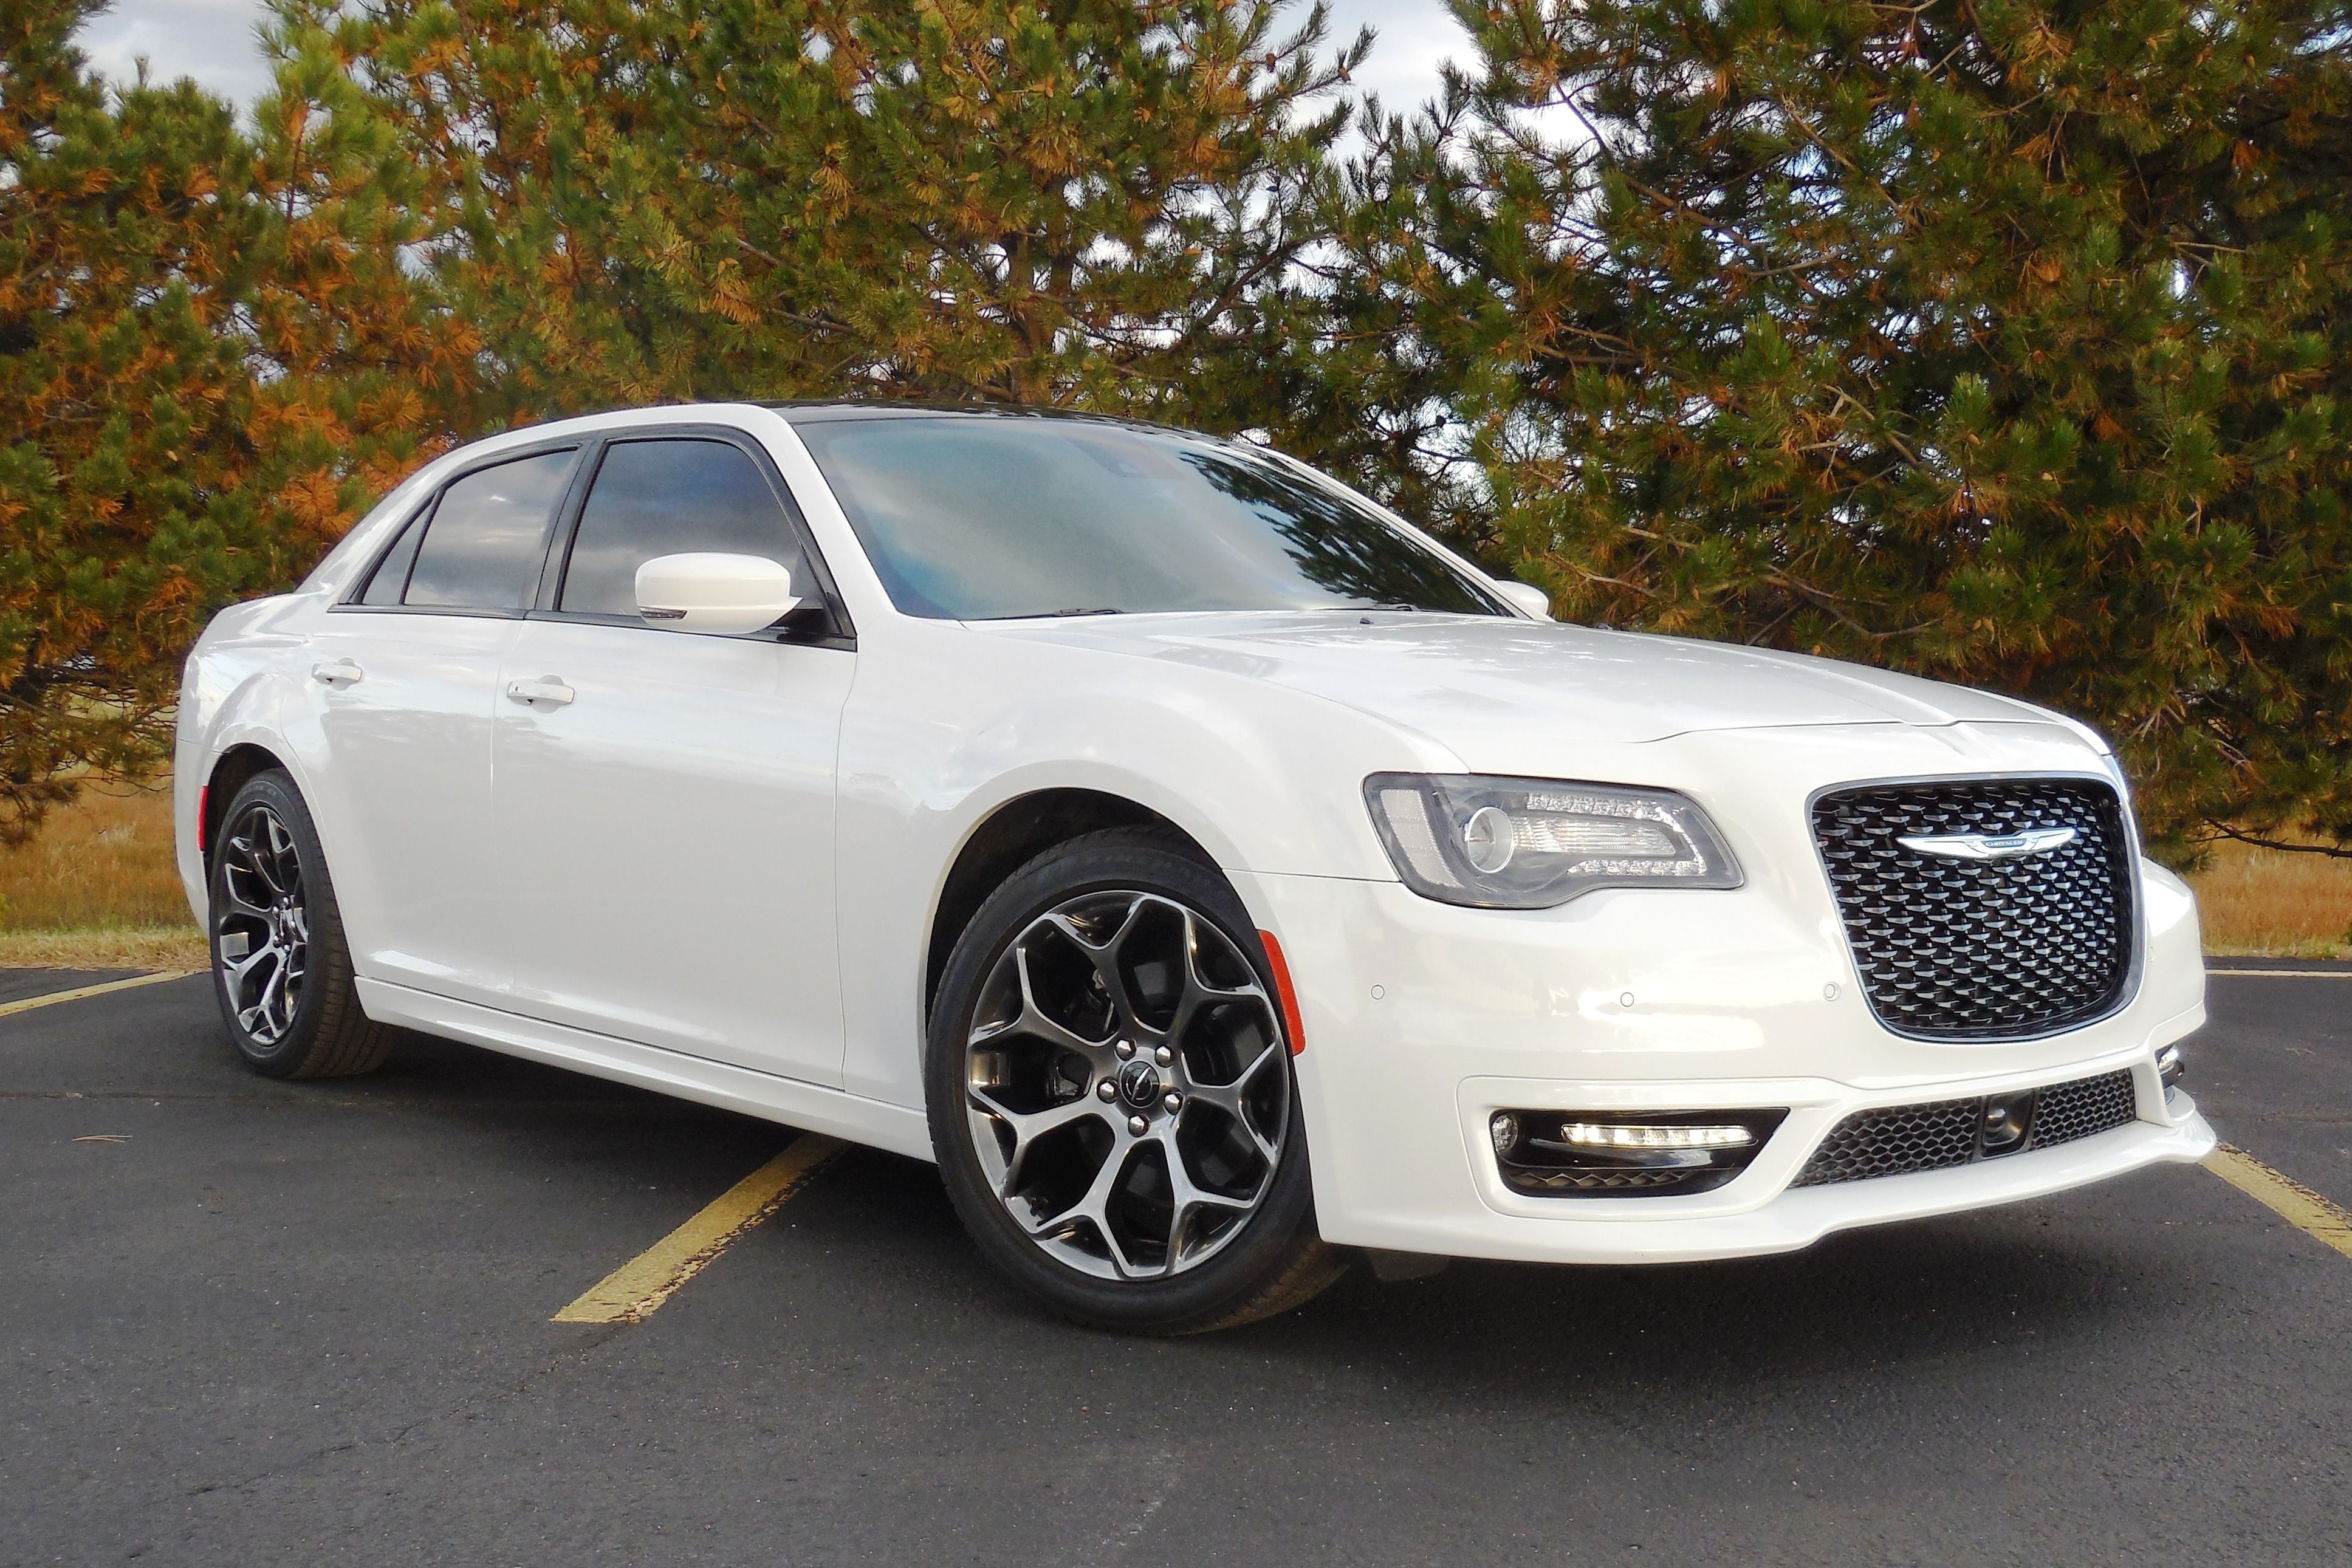 2018 Chrysler 300s W 5 7 Hemi V8 Panoramic Roof With Images